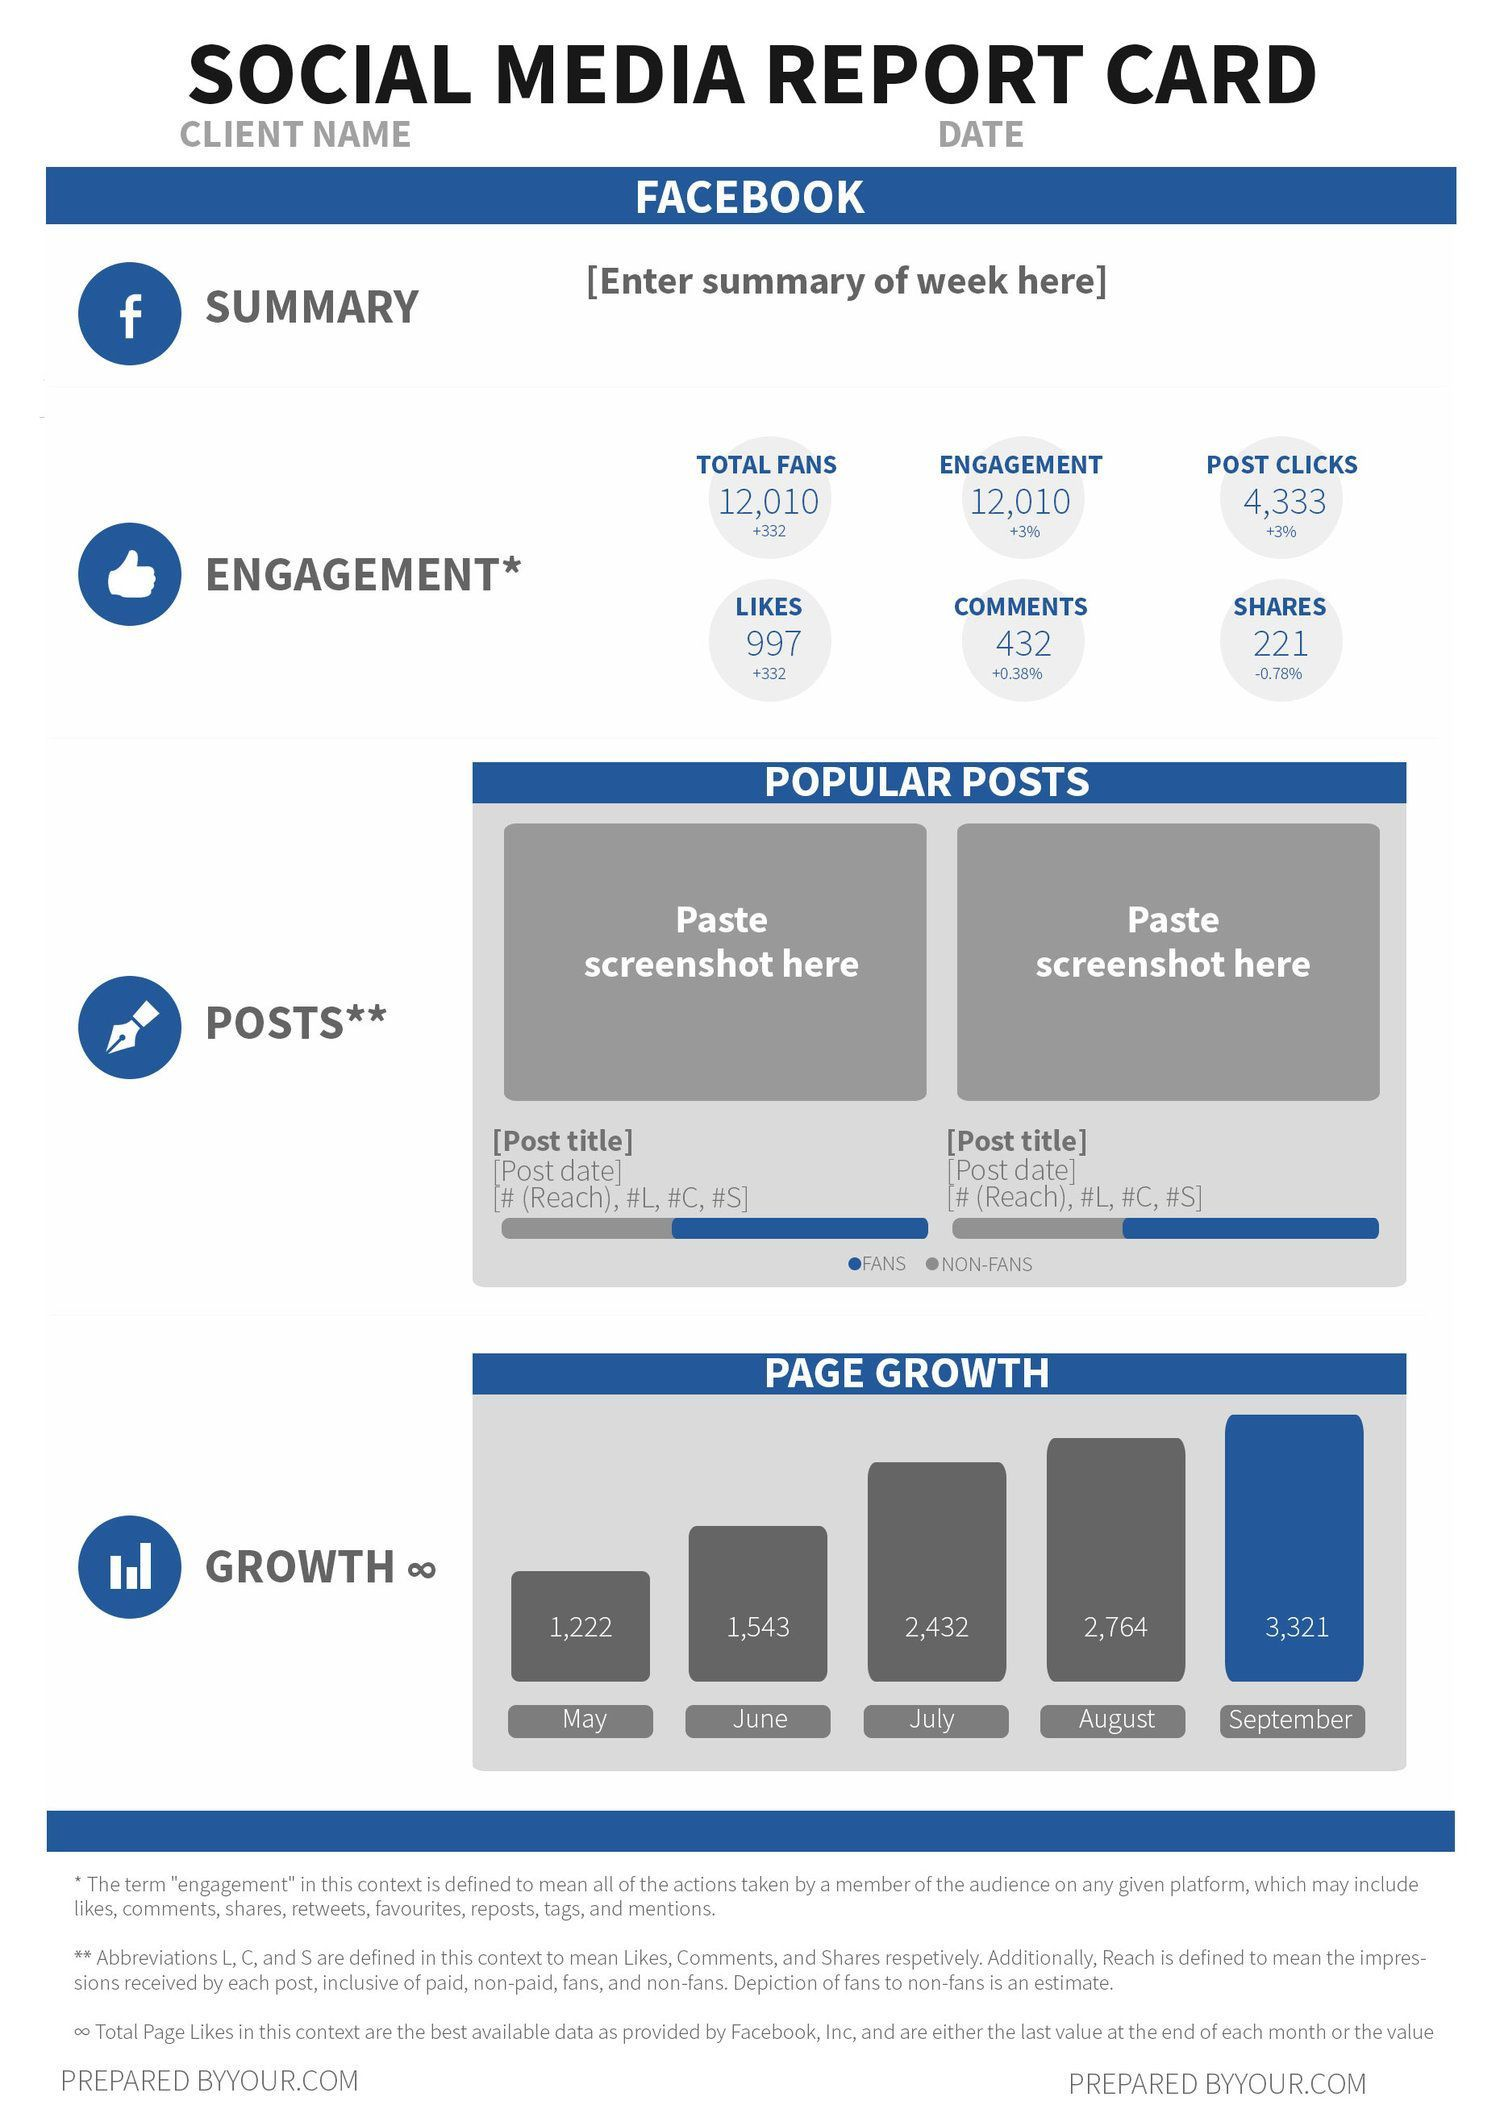 001 Fearsome Social Media Report Template Photo  Templates Powerpoint Monthly FreeFull